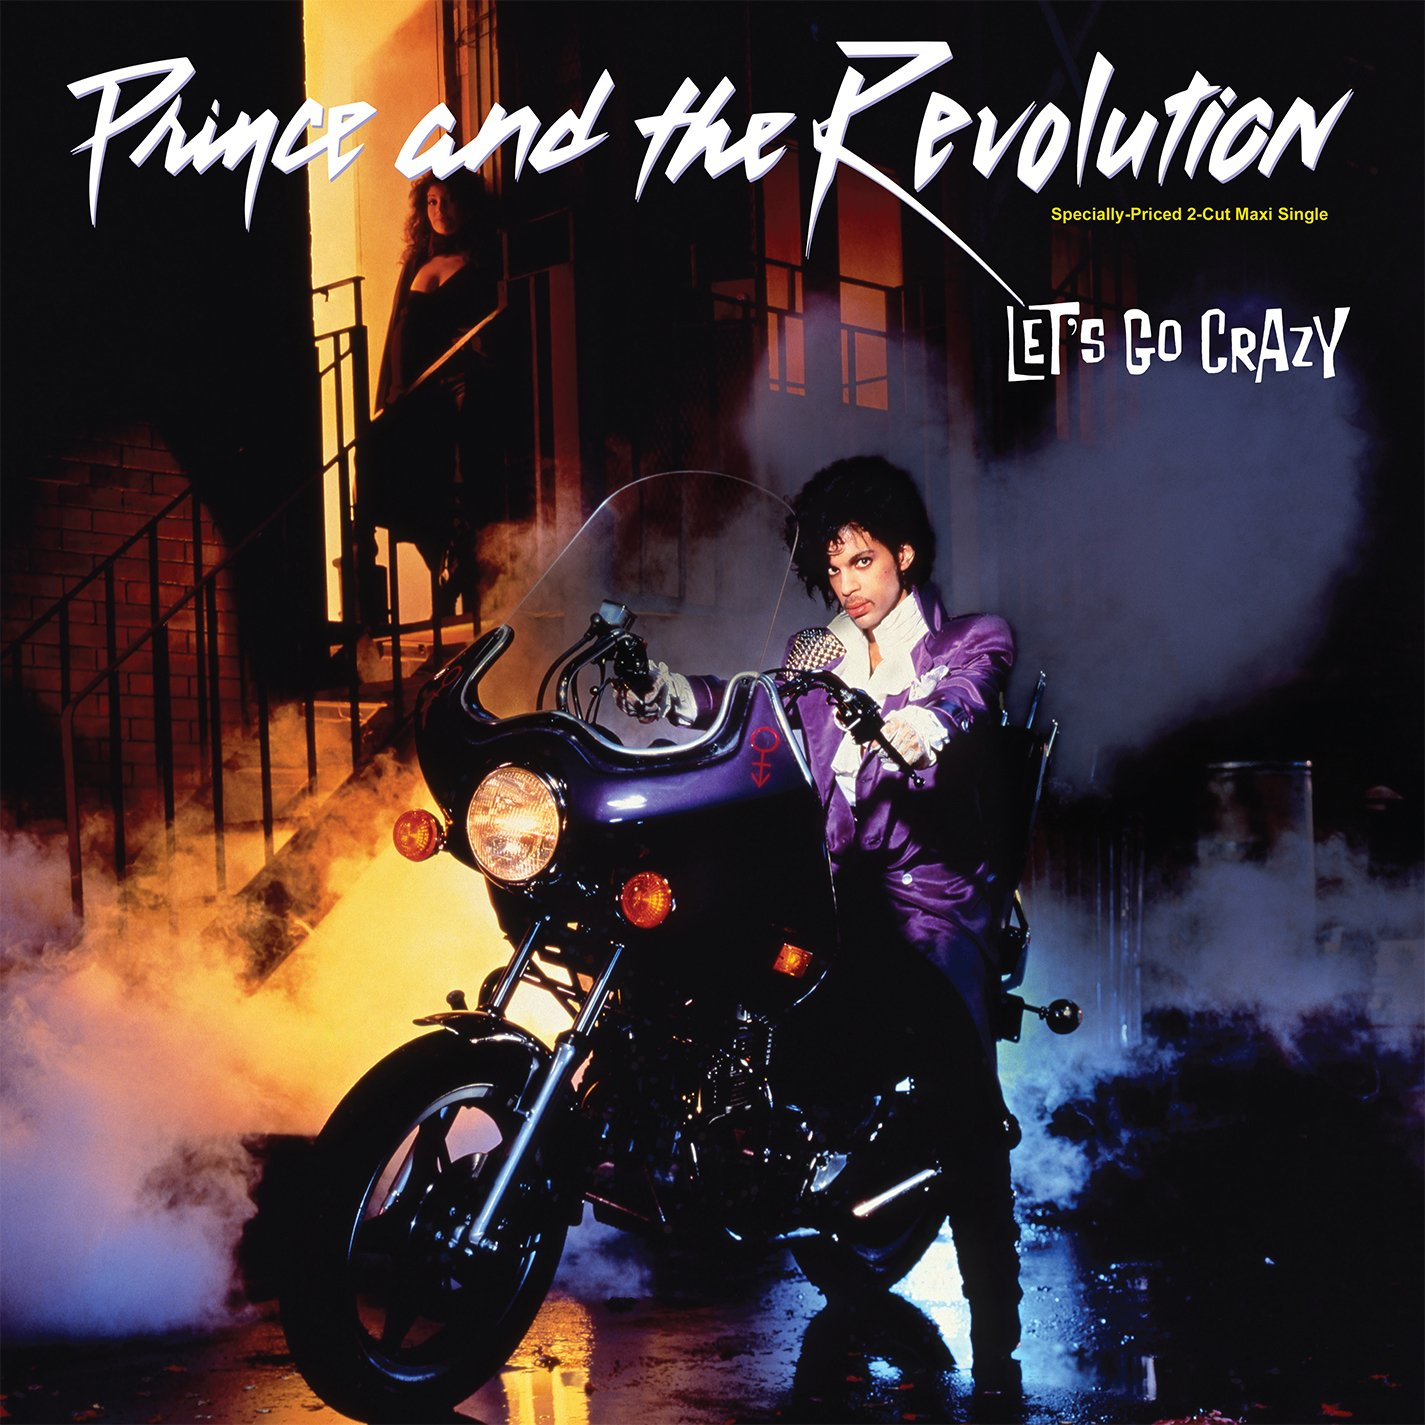 Prince and The Revolution-Lets Go Crazy-(0-20246)-VINYL-FLAC-1984-WRE